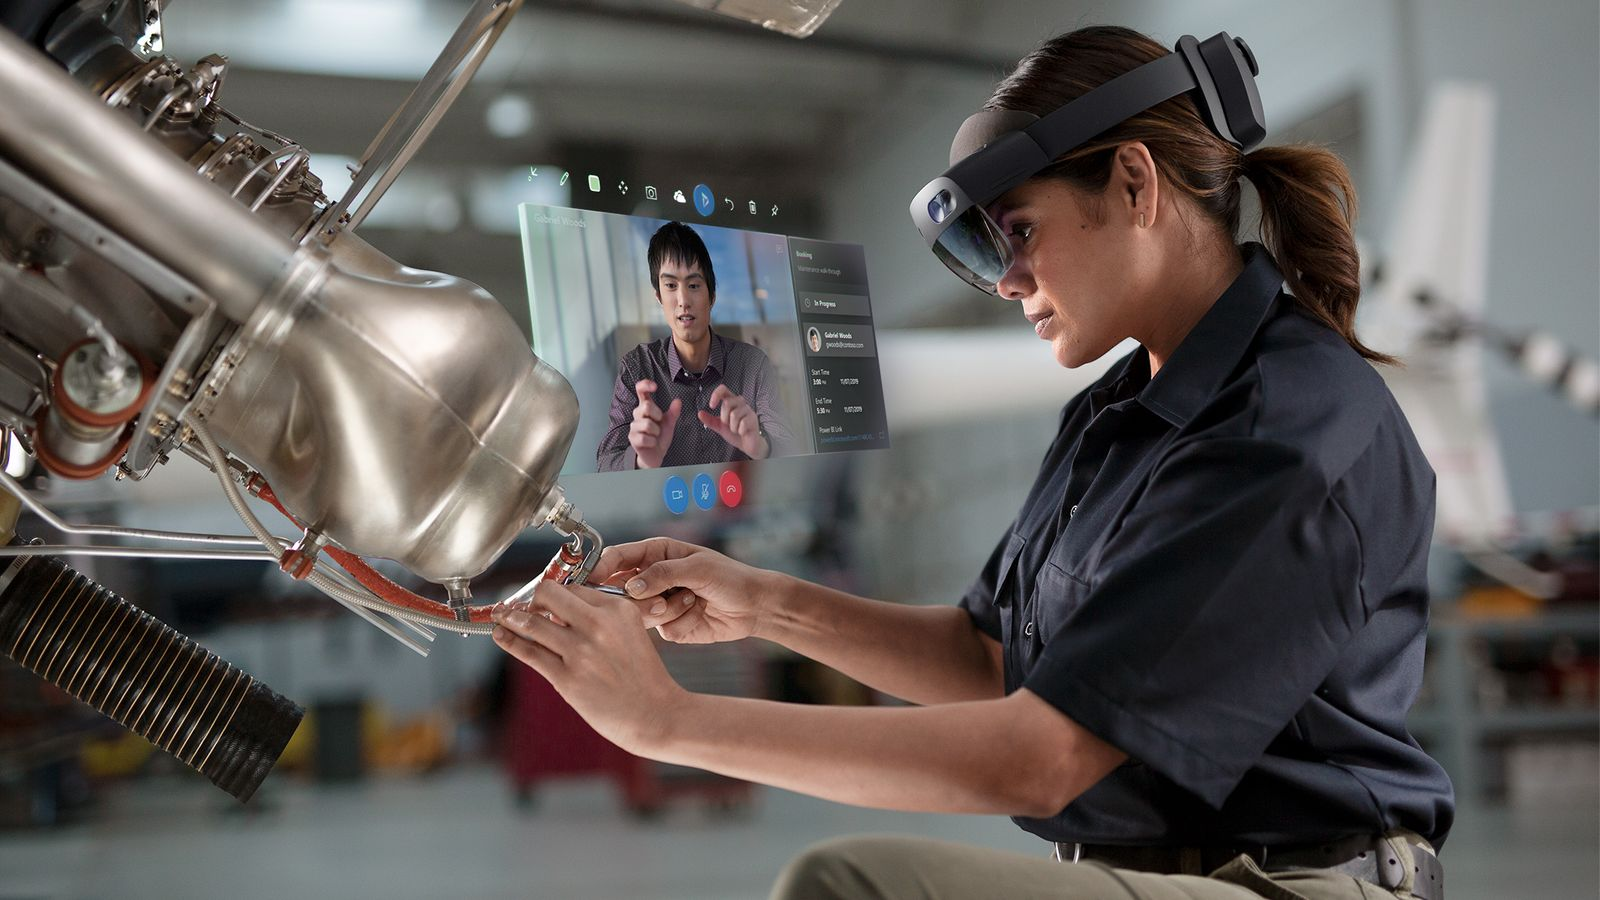 HoloLens 2: Microsoft unveils new augmented reality headset | Science & Tech News | Sky News